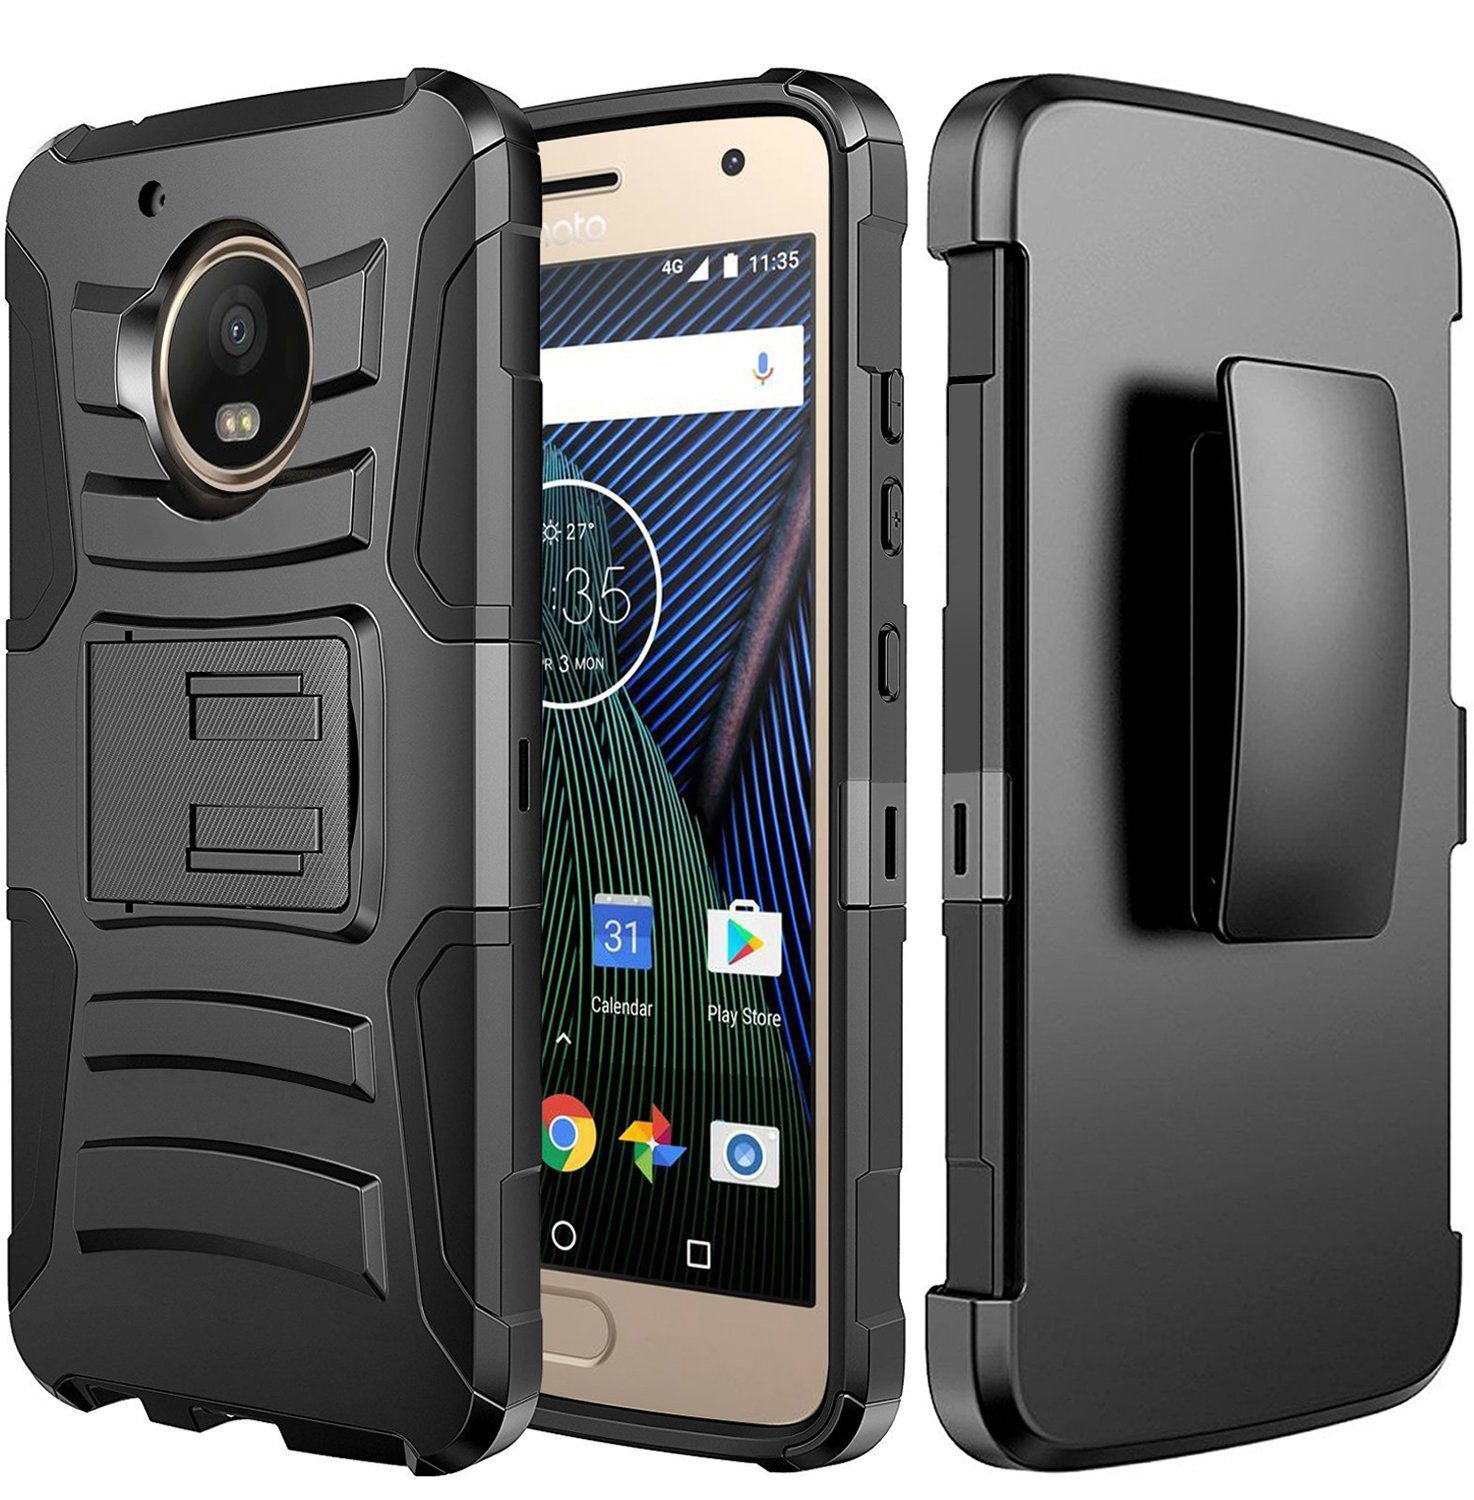 Motorola Moto G5 Plus Case, Dual Layer Hard Case w/ Kickstand on [Black] Silicone Skin Case w/ Holster with Travel Wallet Phone Stand